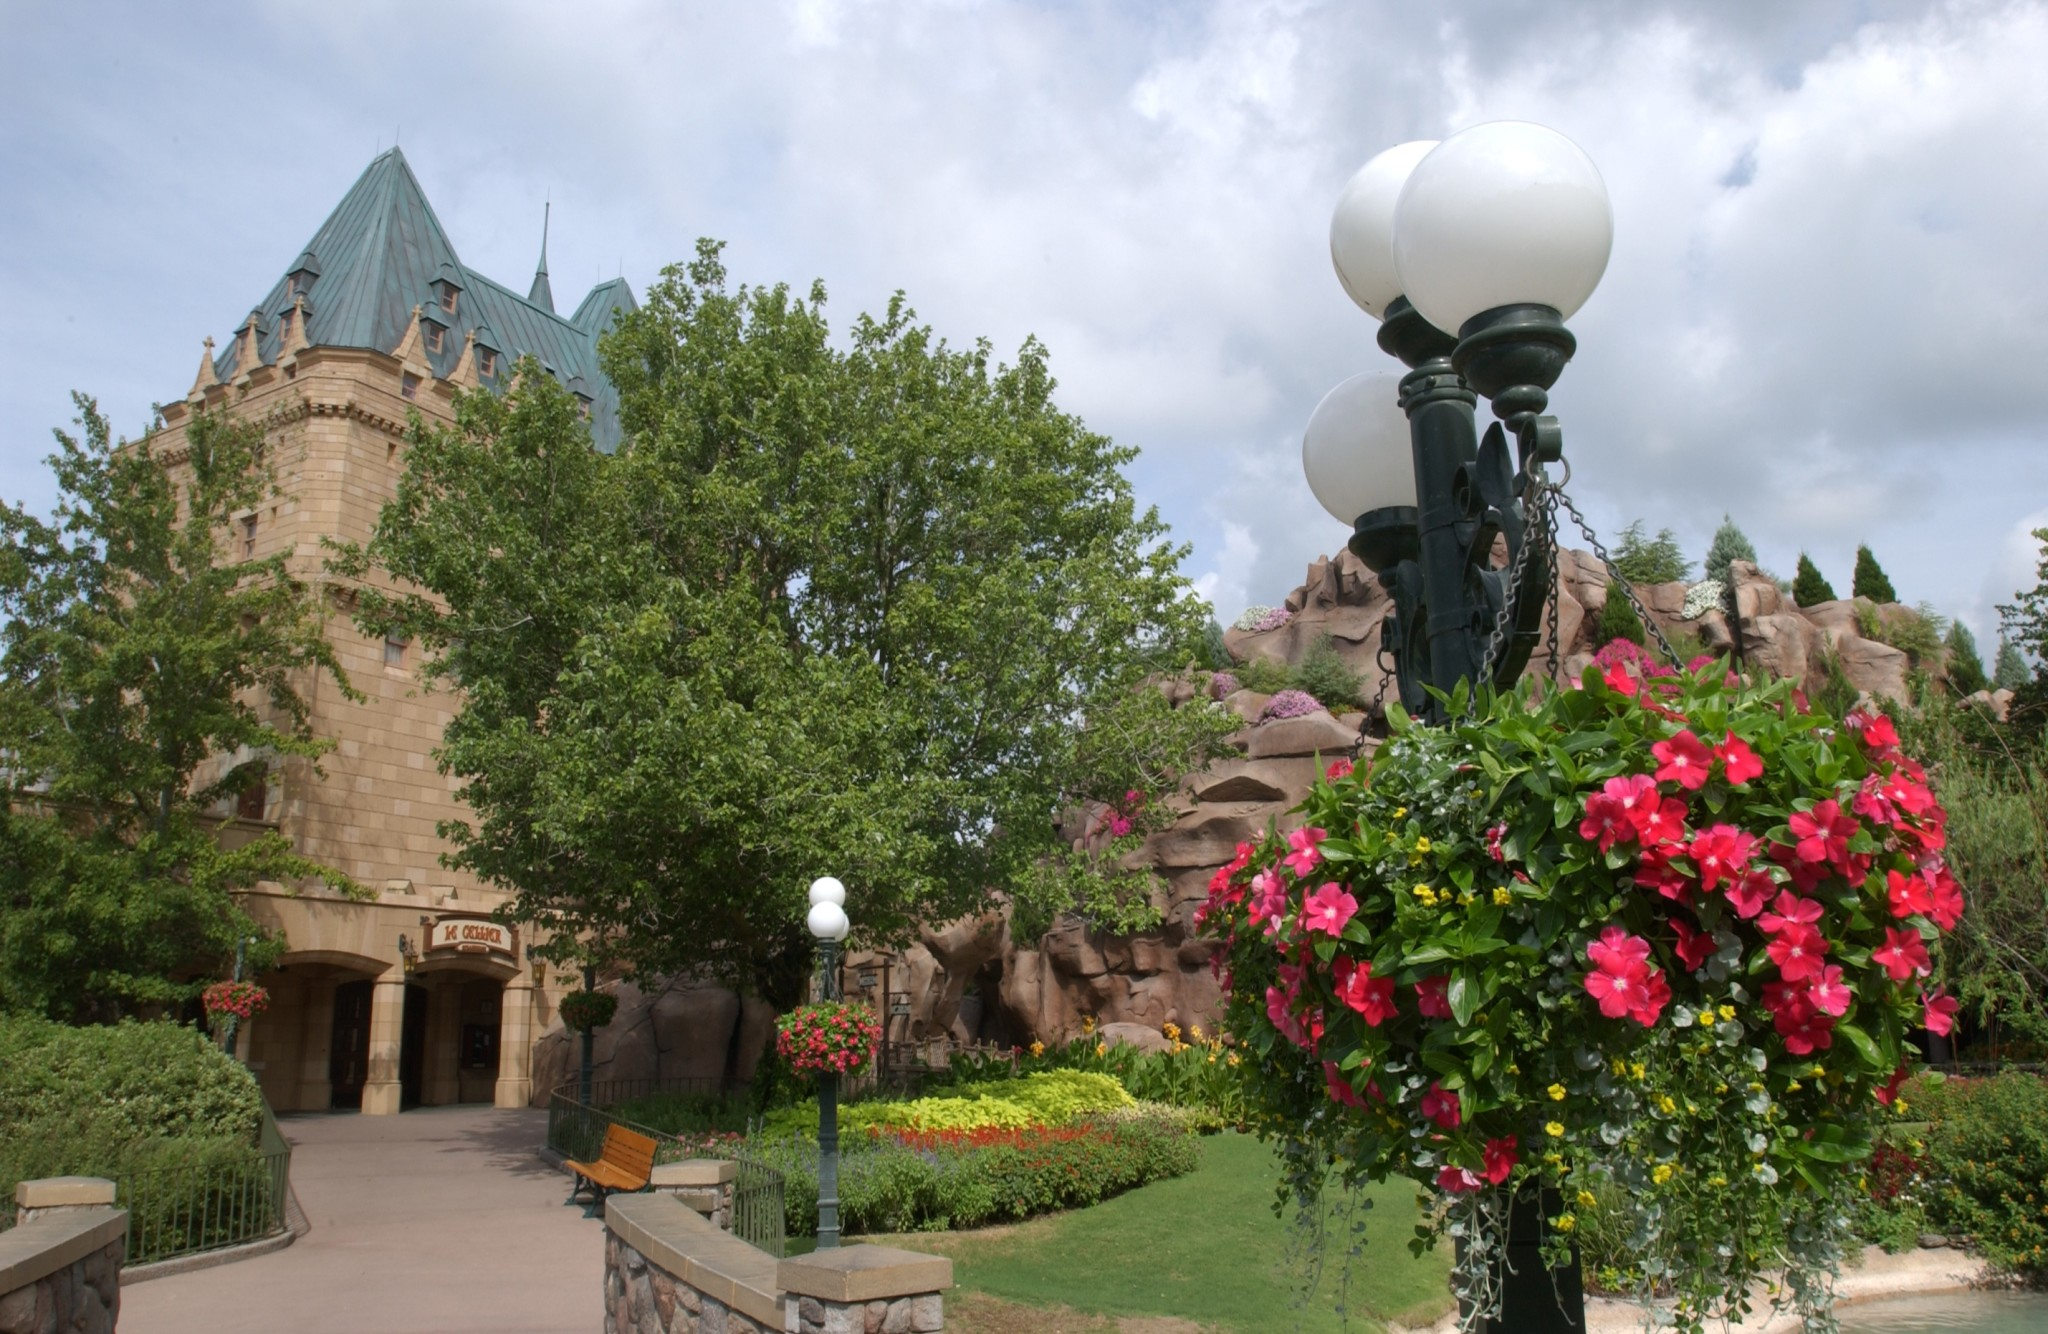 New! Le Cellier is Offering Brunch for a Limited Time